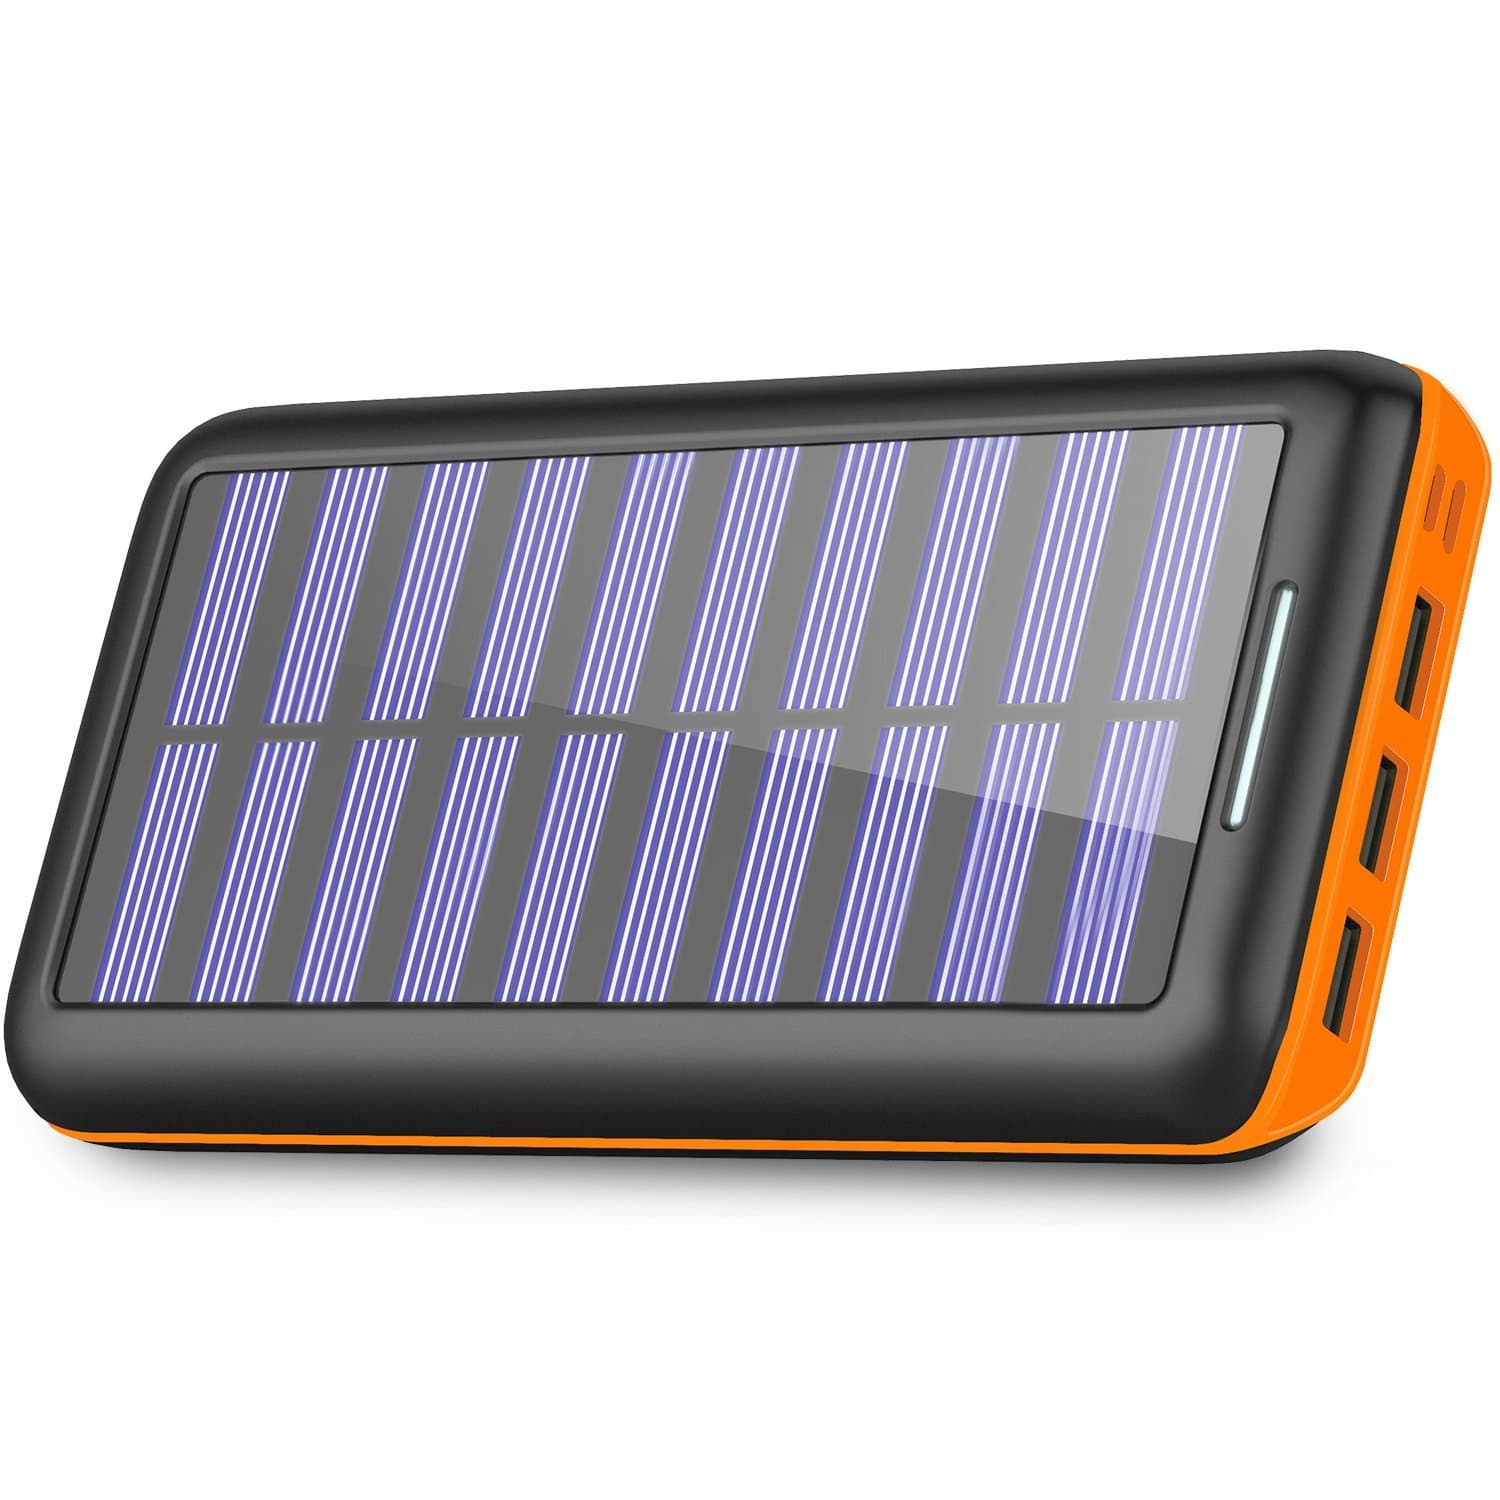 PLOCHY Solar Power Bank